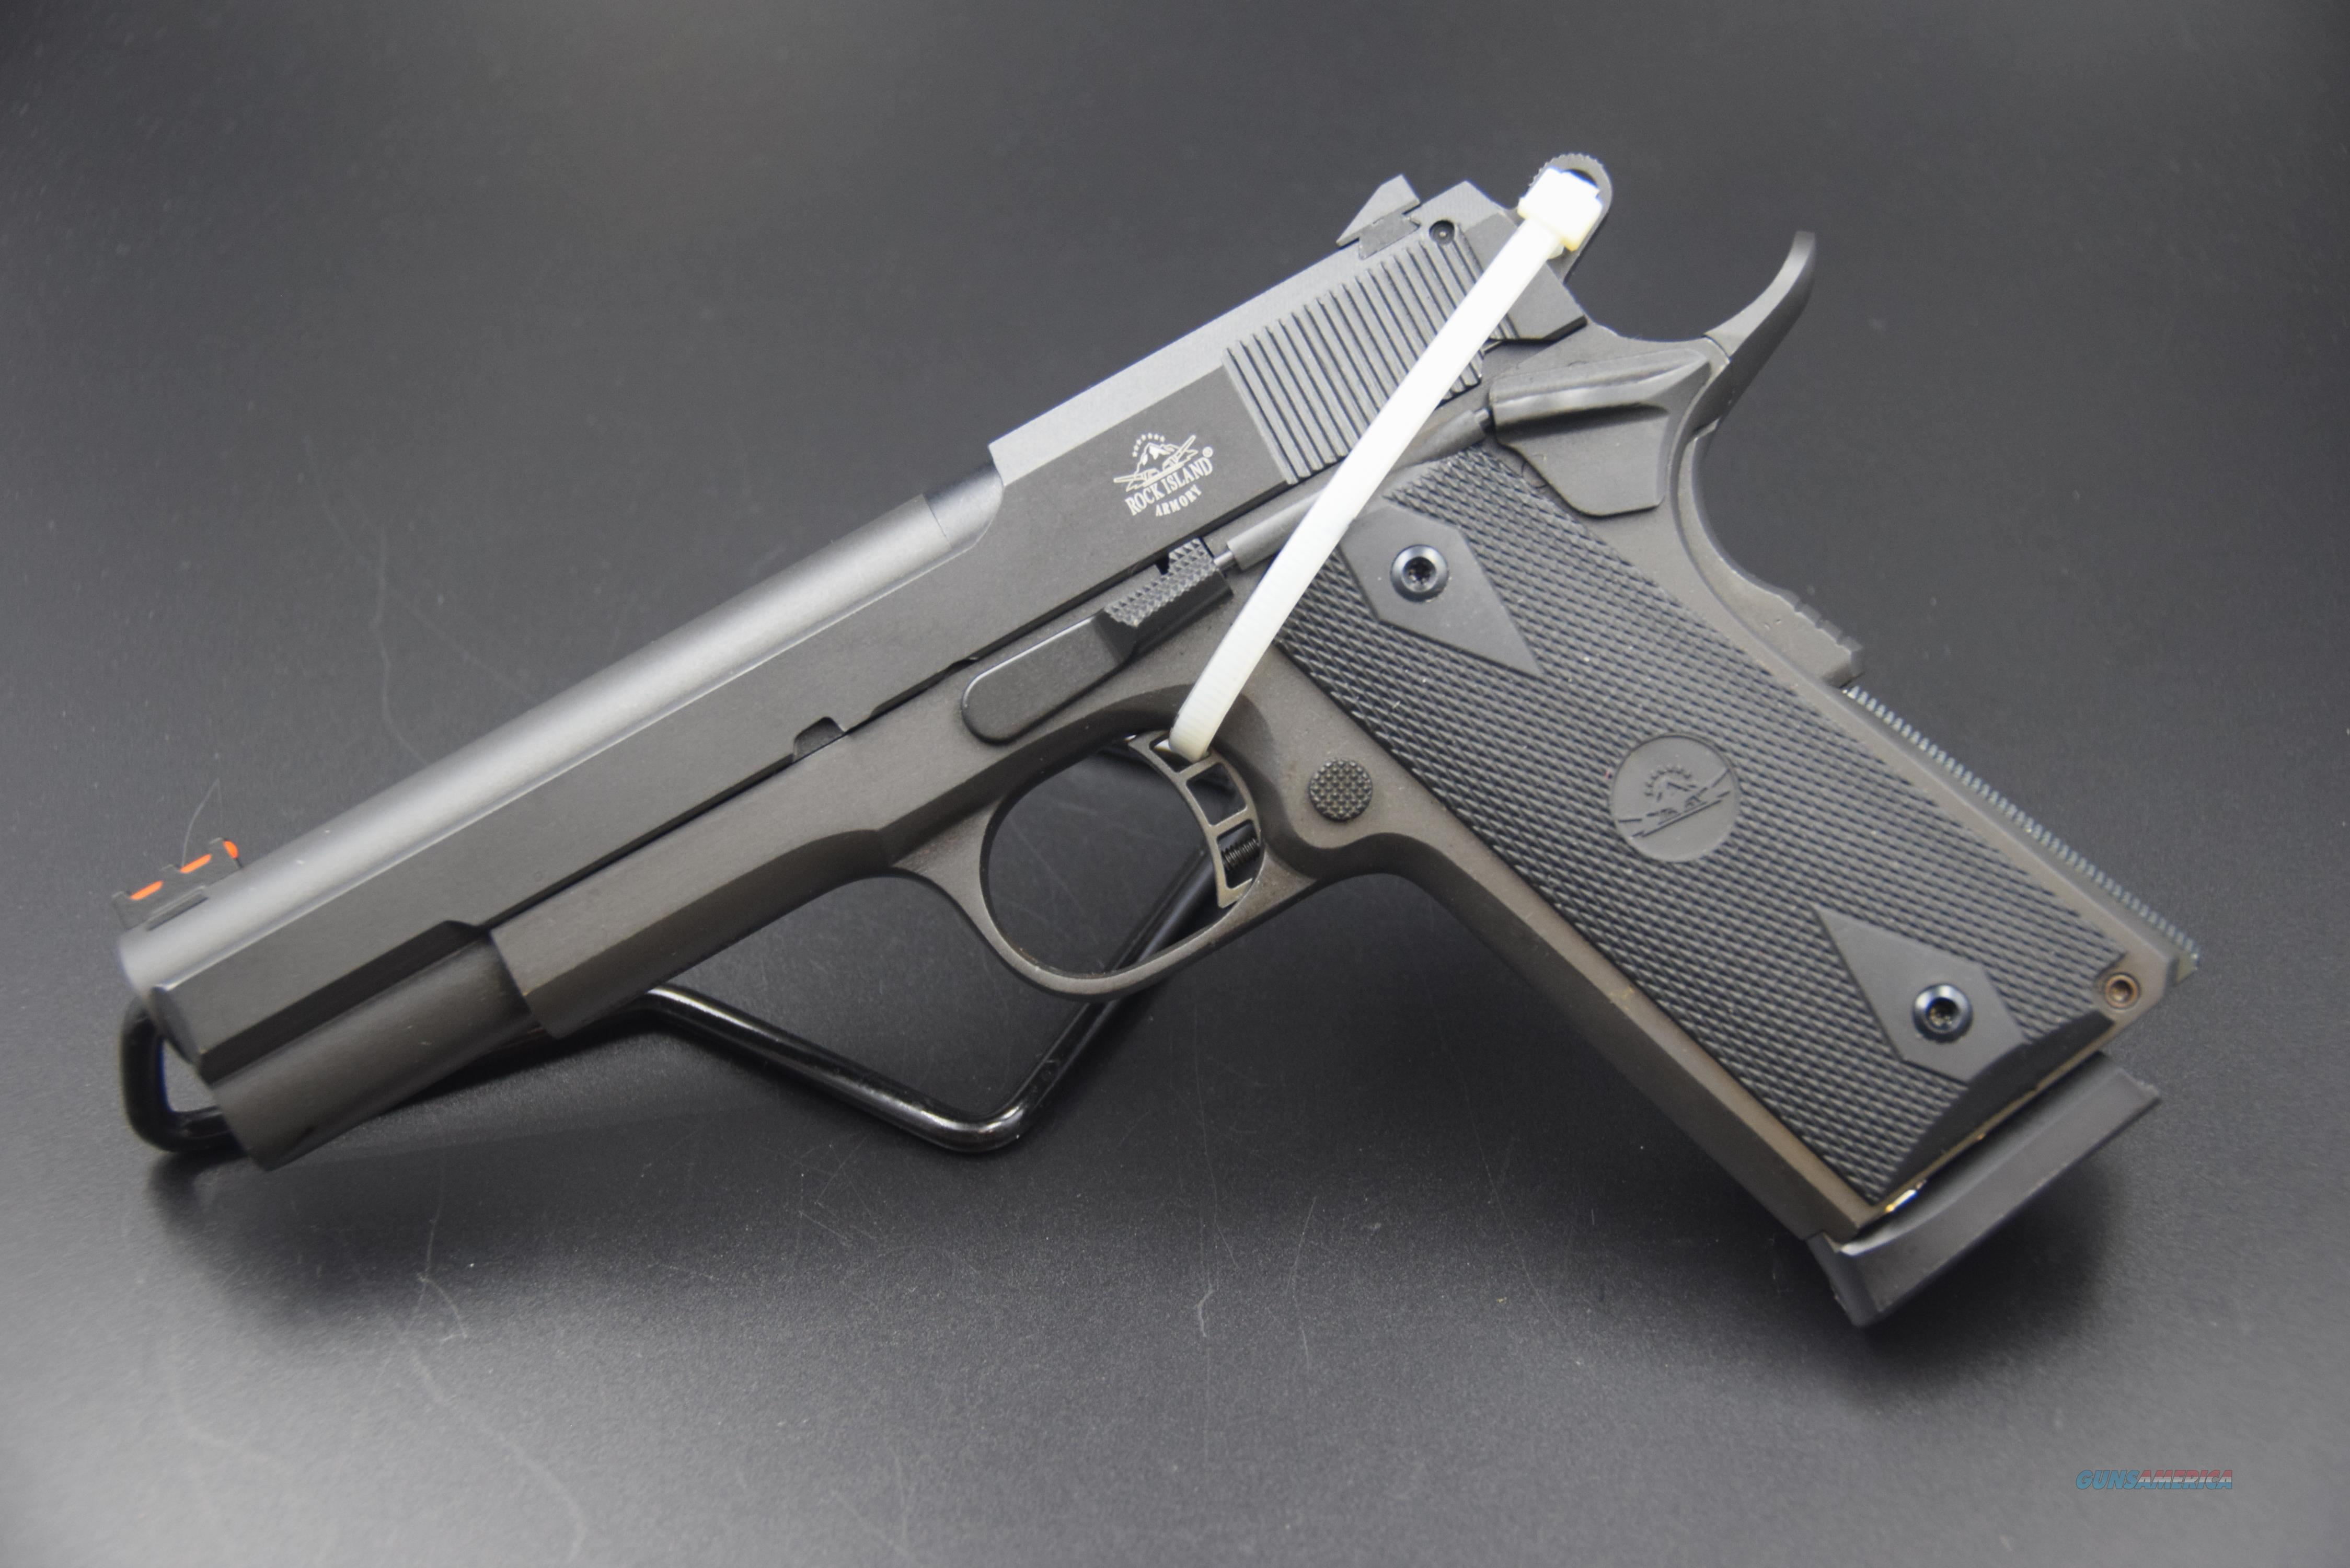 .22 MAGNUM 1911-A1 PISTOL BY ROCK INSLAND ARMORY -- REDUCED WITH SHIPPING  Guns > Pistols > Rock Island Armory Pistols > Rock Island